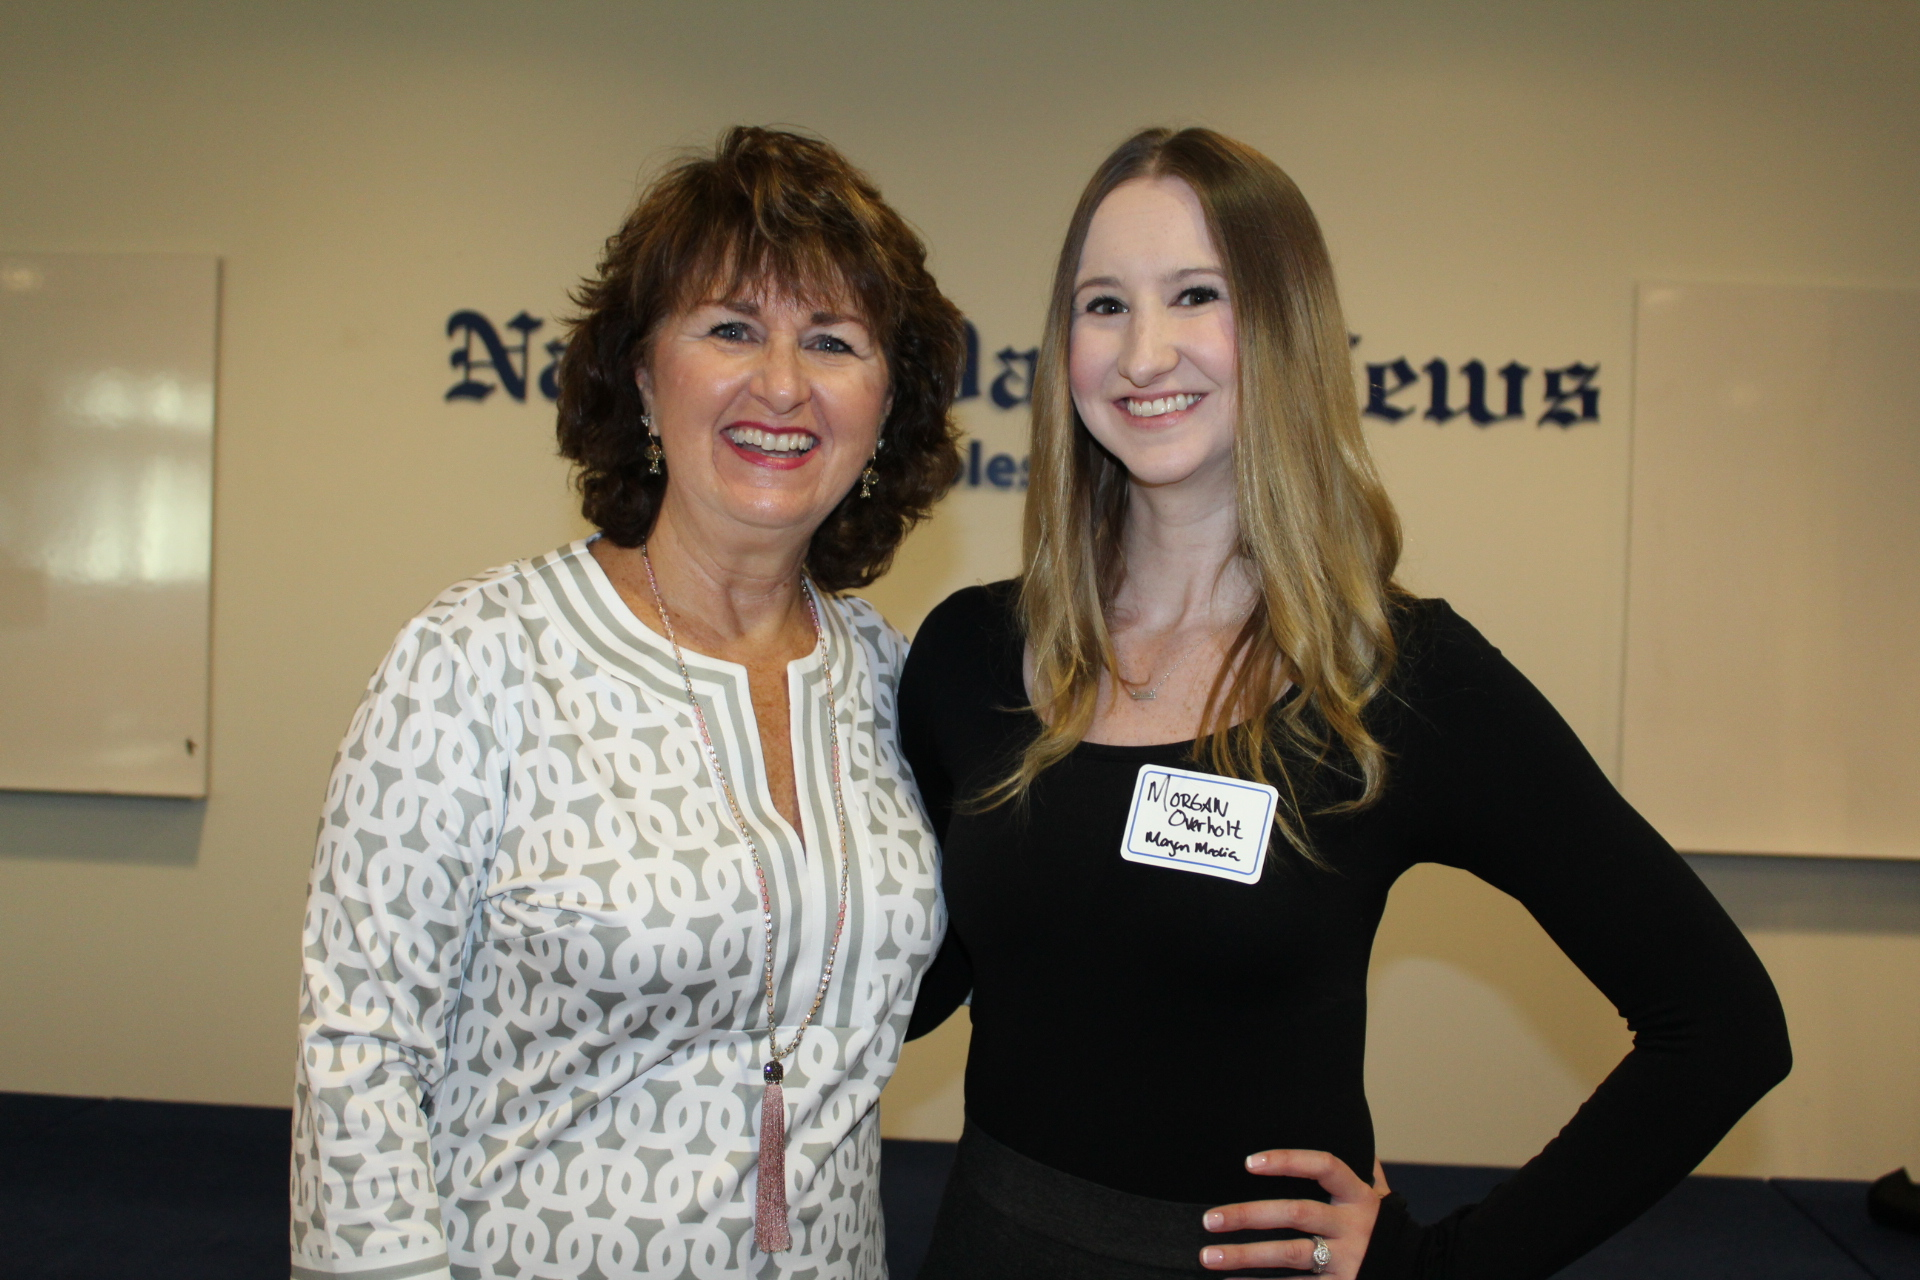 Morgan Overholt (former JTV host) and owner of Morgan Media LLC with Sue Huff from Sue Huff & Associates